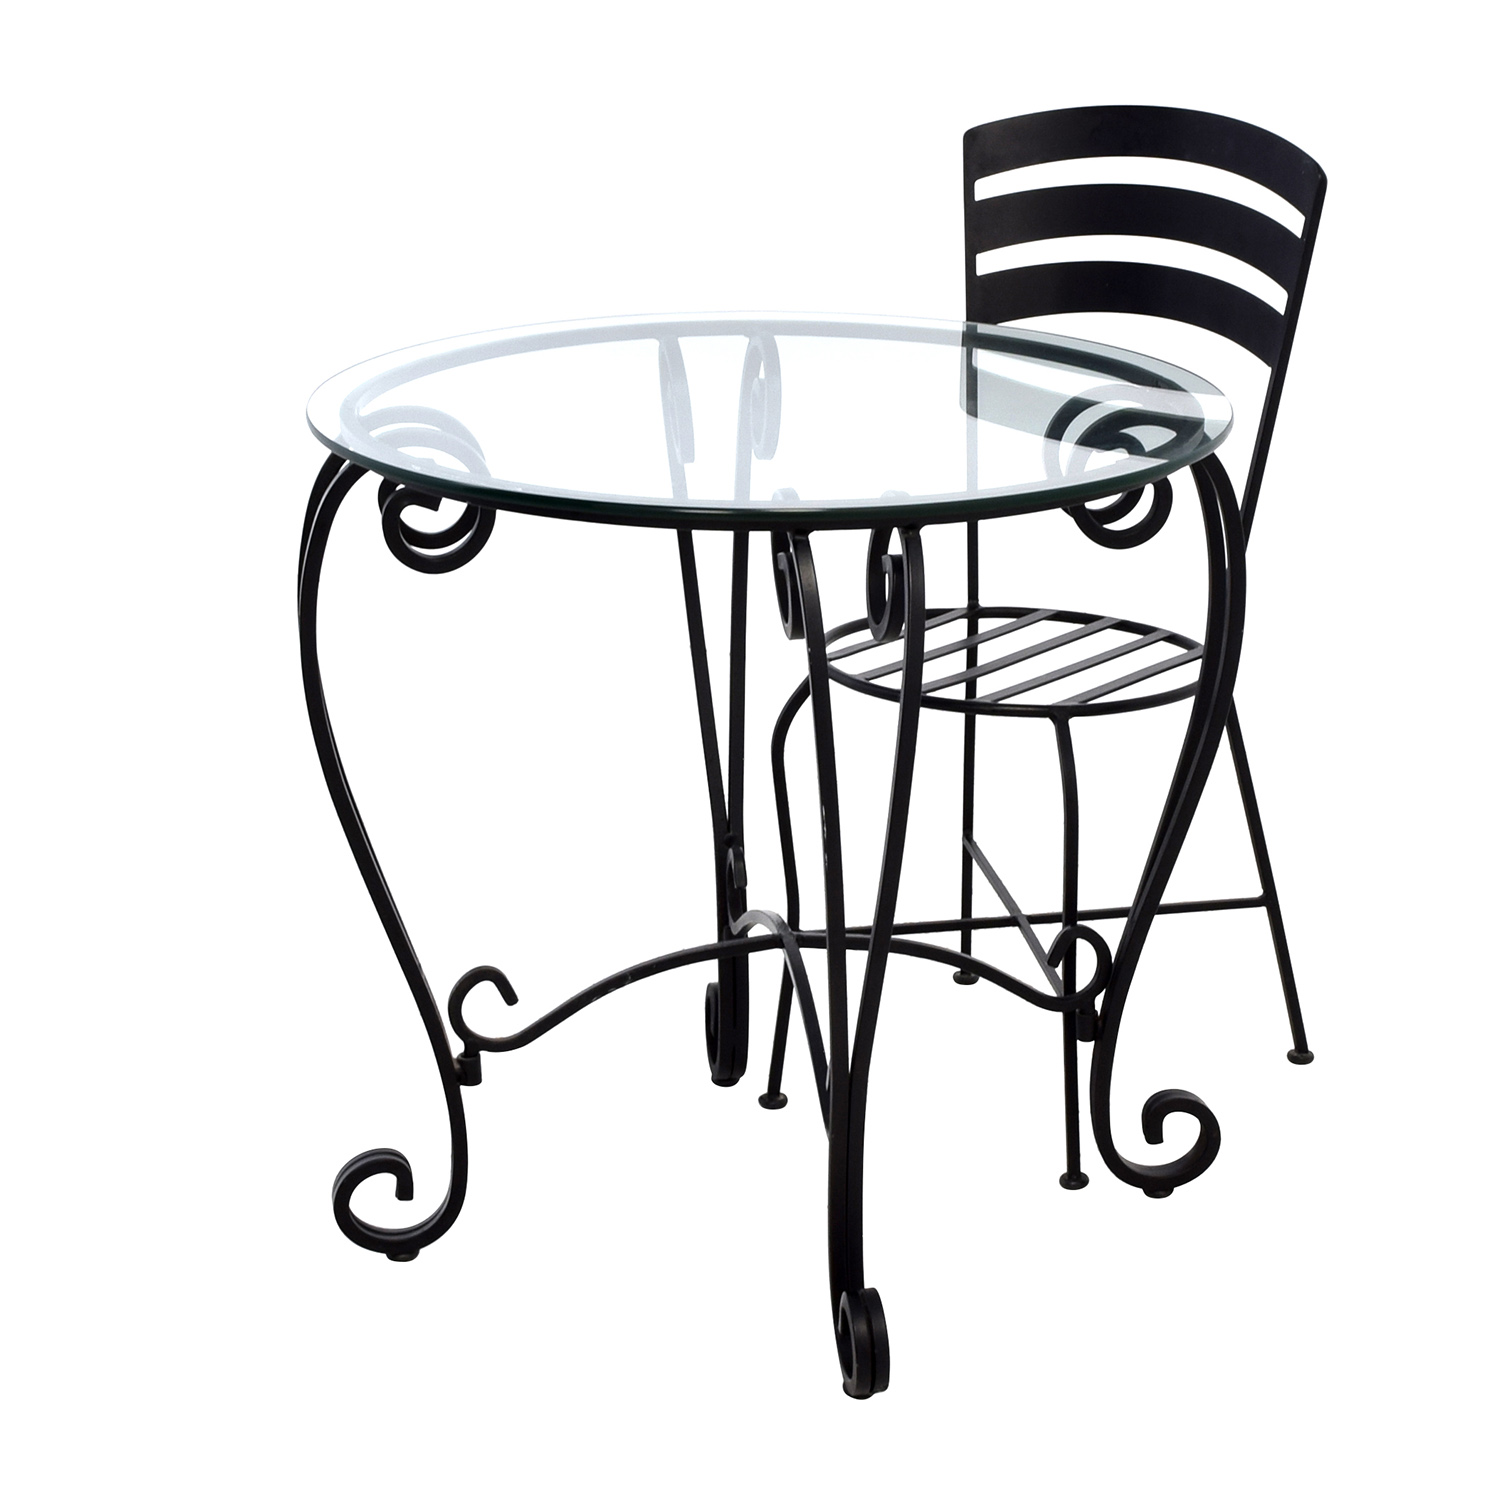 off wrought iron round glass top breakfast table accent tables backyard furniture slim bedside battery operated indoor lights white wine cabinet linen napkins bulk grey end asian